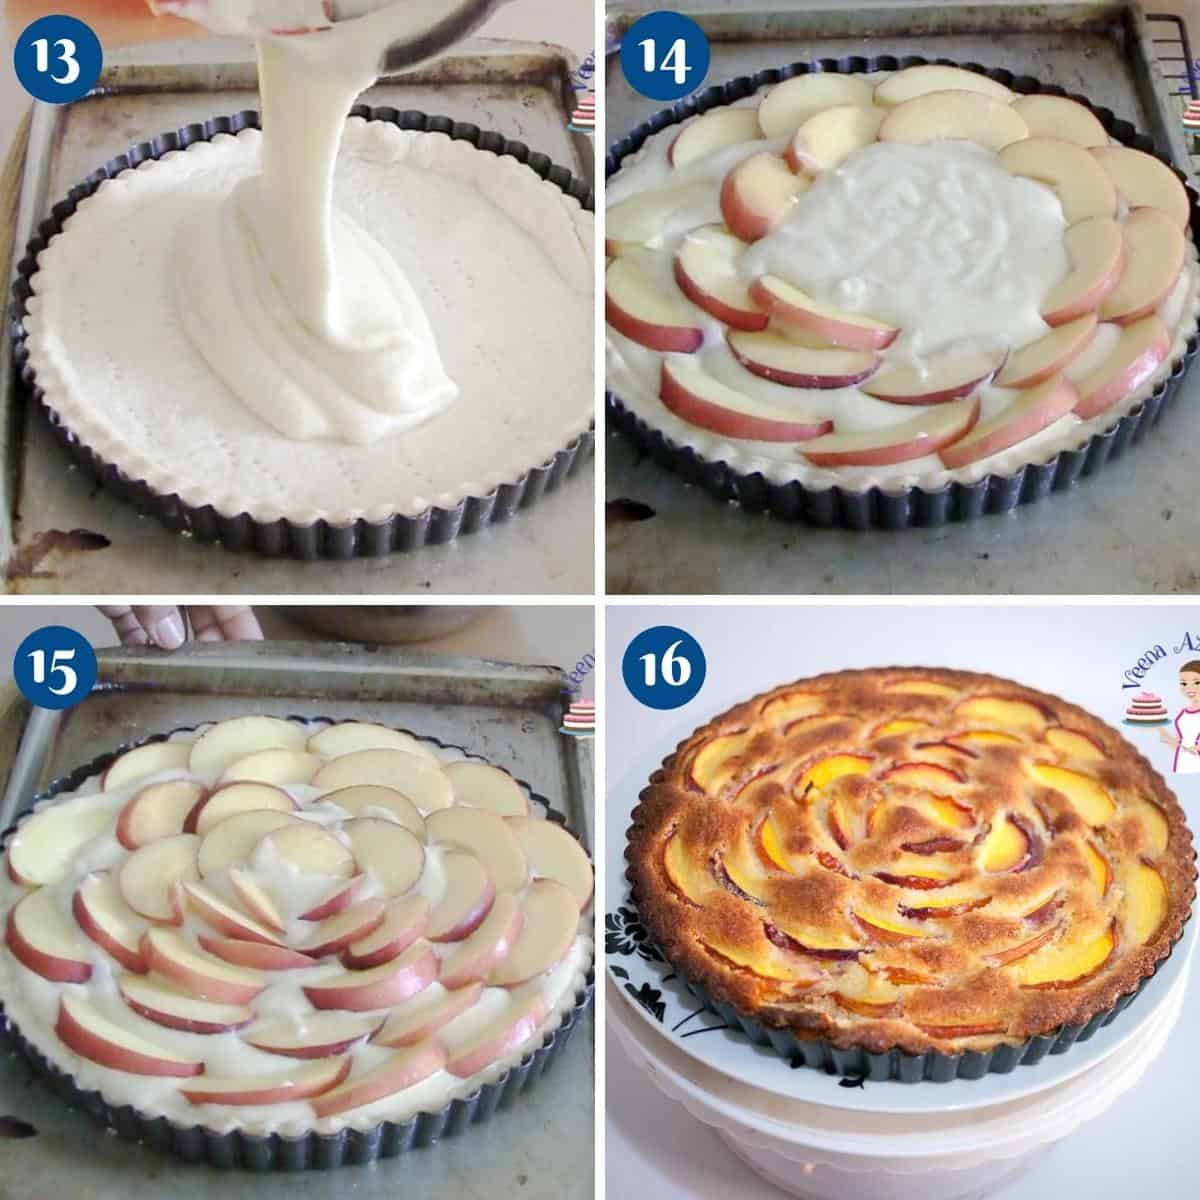 Progress pictures baking the tart with nectarines.